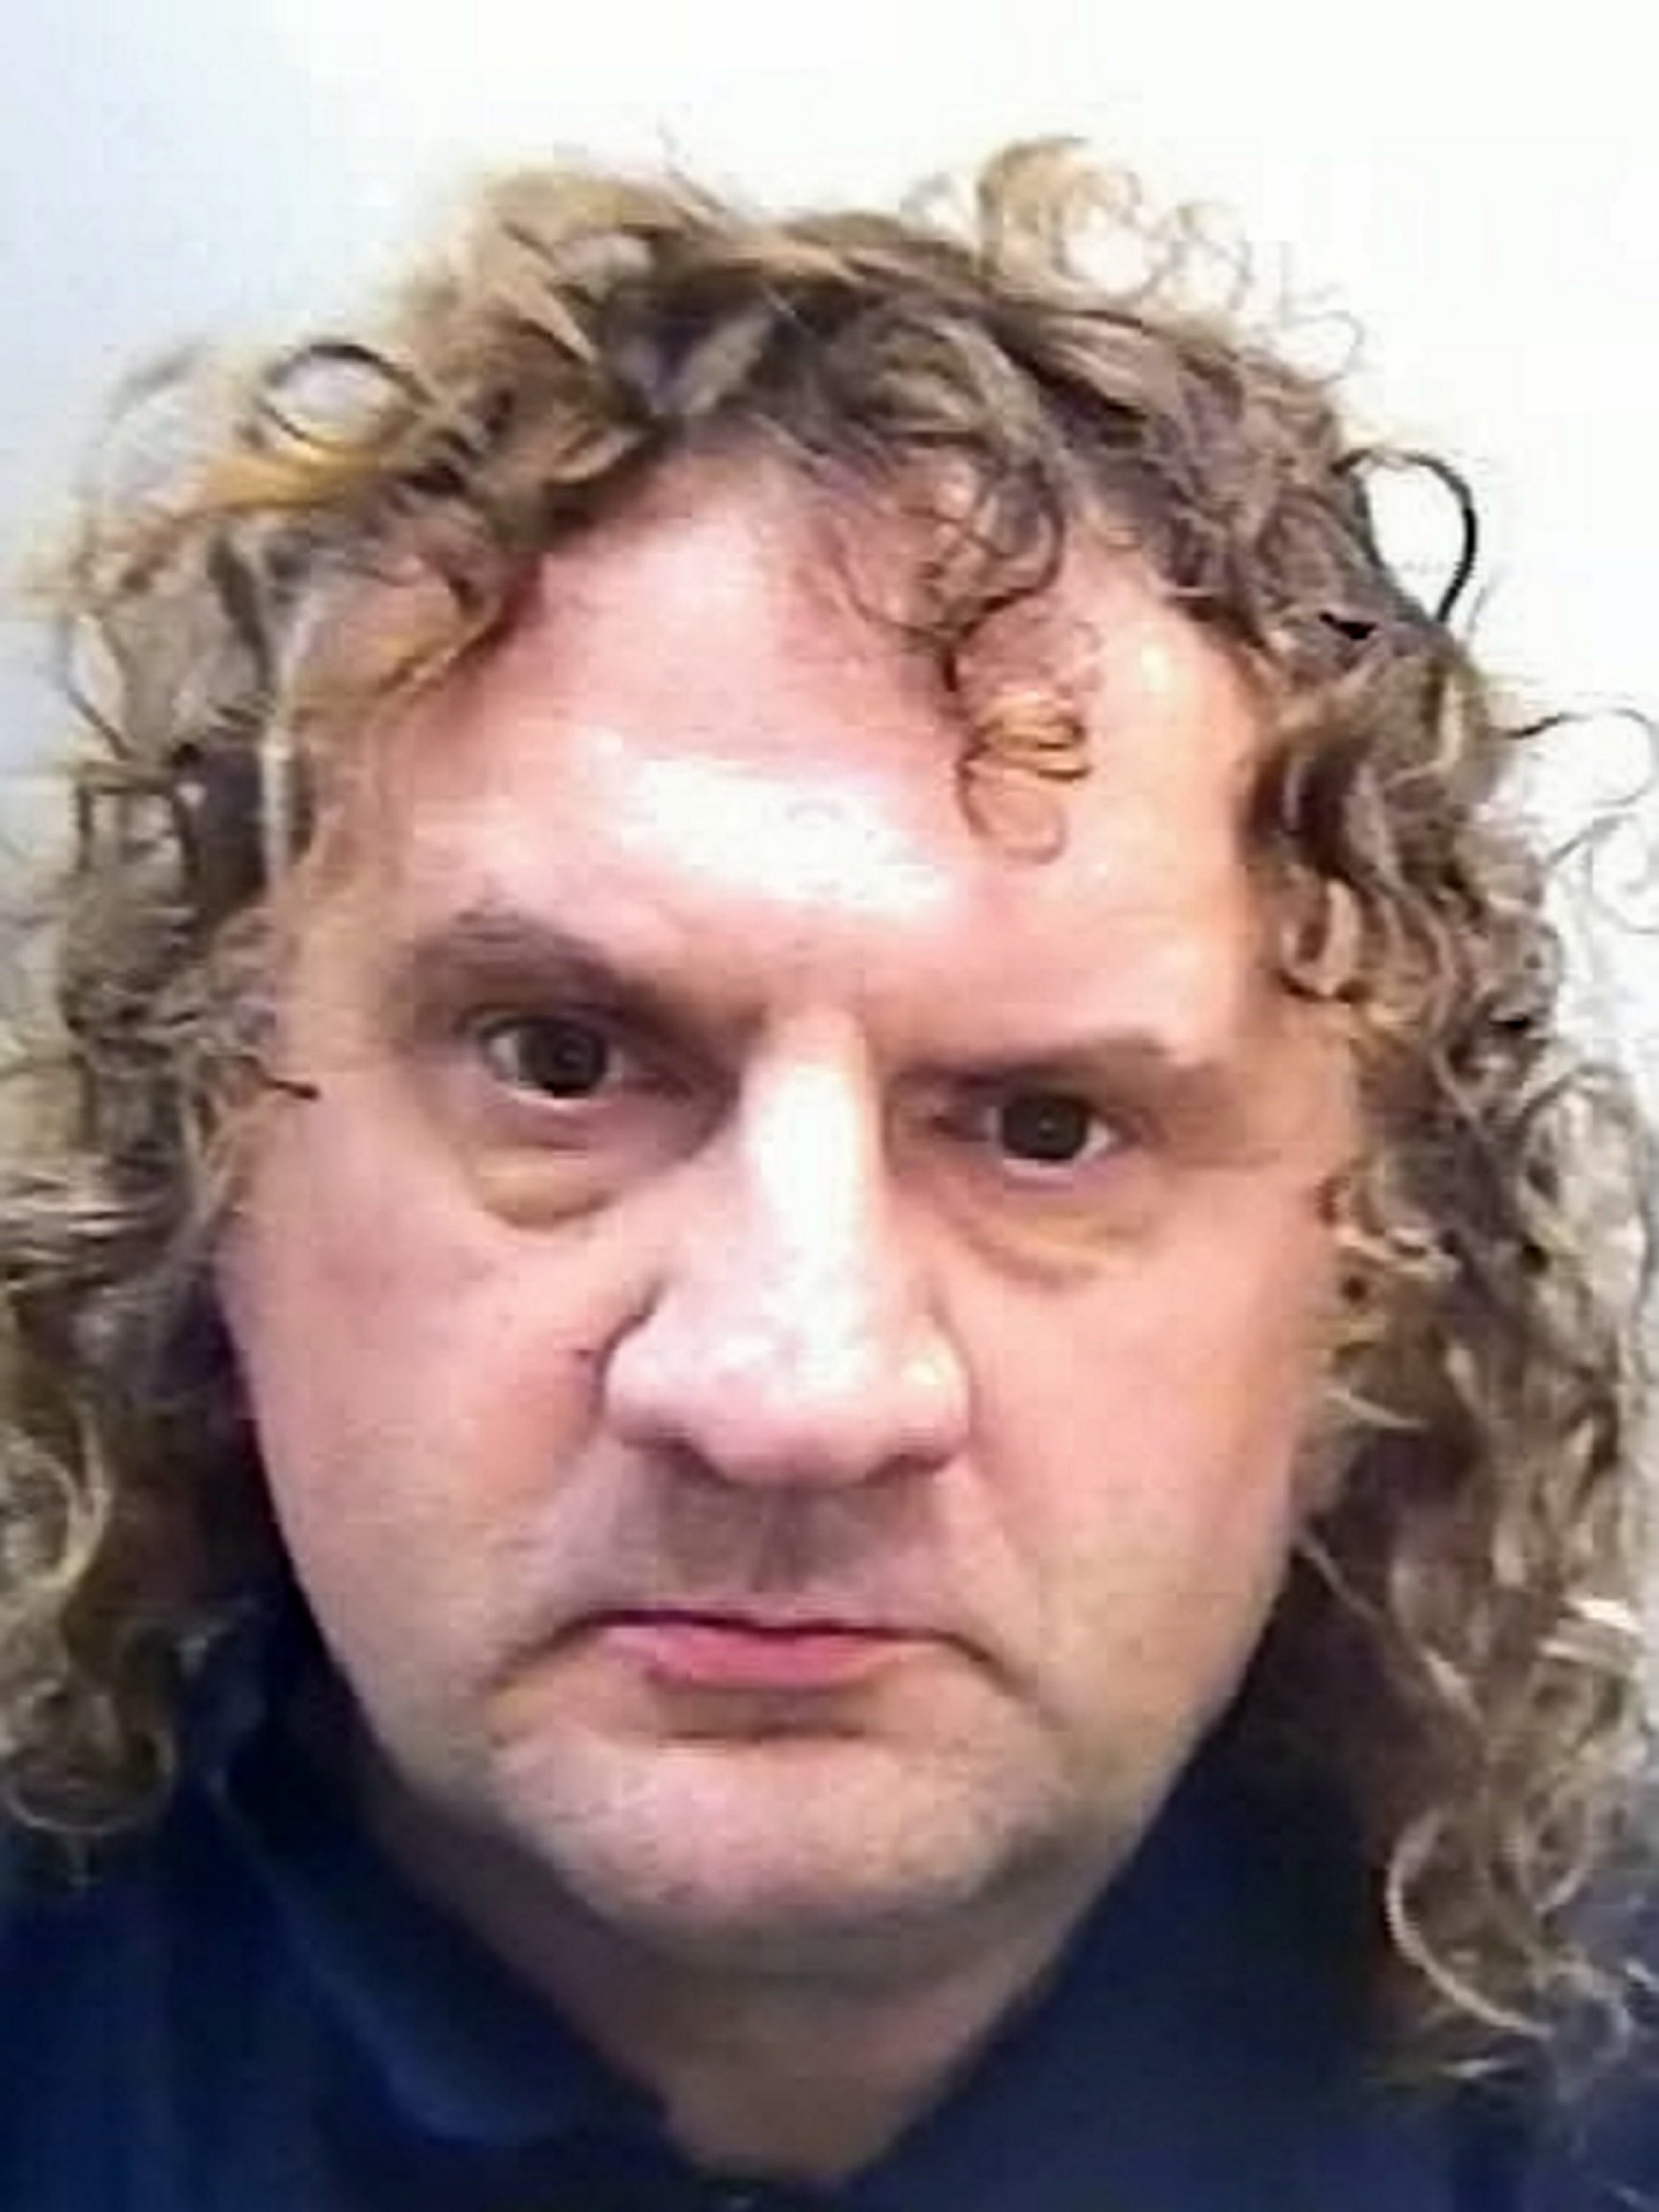 """Joseph Kaczkowski, 53. See Ross Parry story RPYATTACK;This chilling phone call is the moment a man calmly called for an ambulance after battering his 93-year-old mum in a brutal attack. Sadistic Joseph Kaczkowski, 53, launched the """"cowardly, sustained and brutal"""" attack on his blind mum Tekla Kaczkowski following an argument about money. But when he called for an ambulance to help her he remained """"calm and collected"""" and pretended he didn't know how her injuries were caused."""